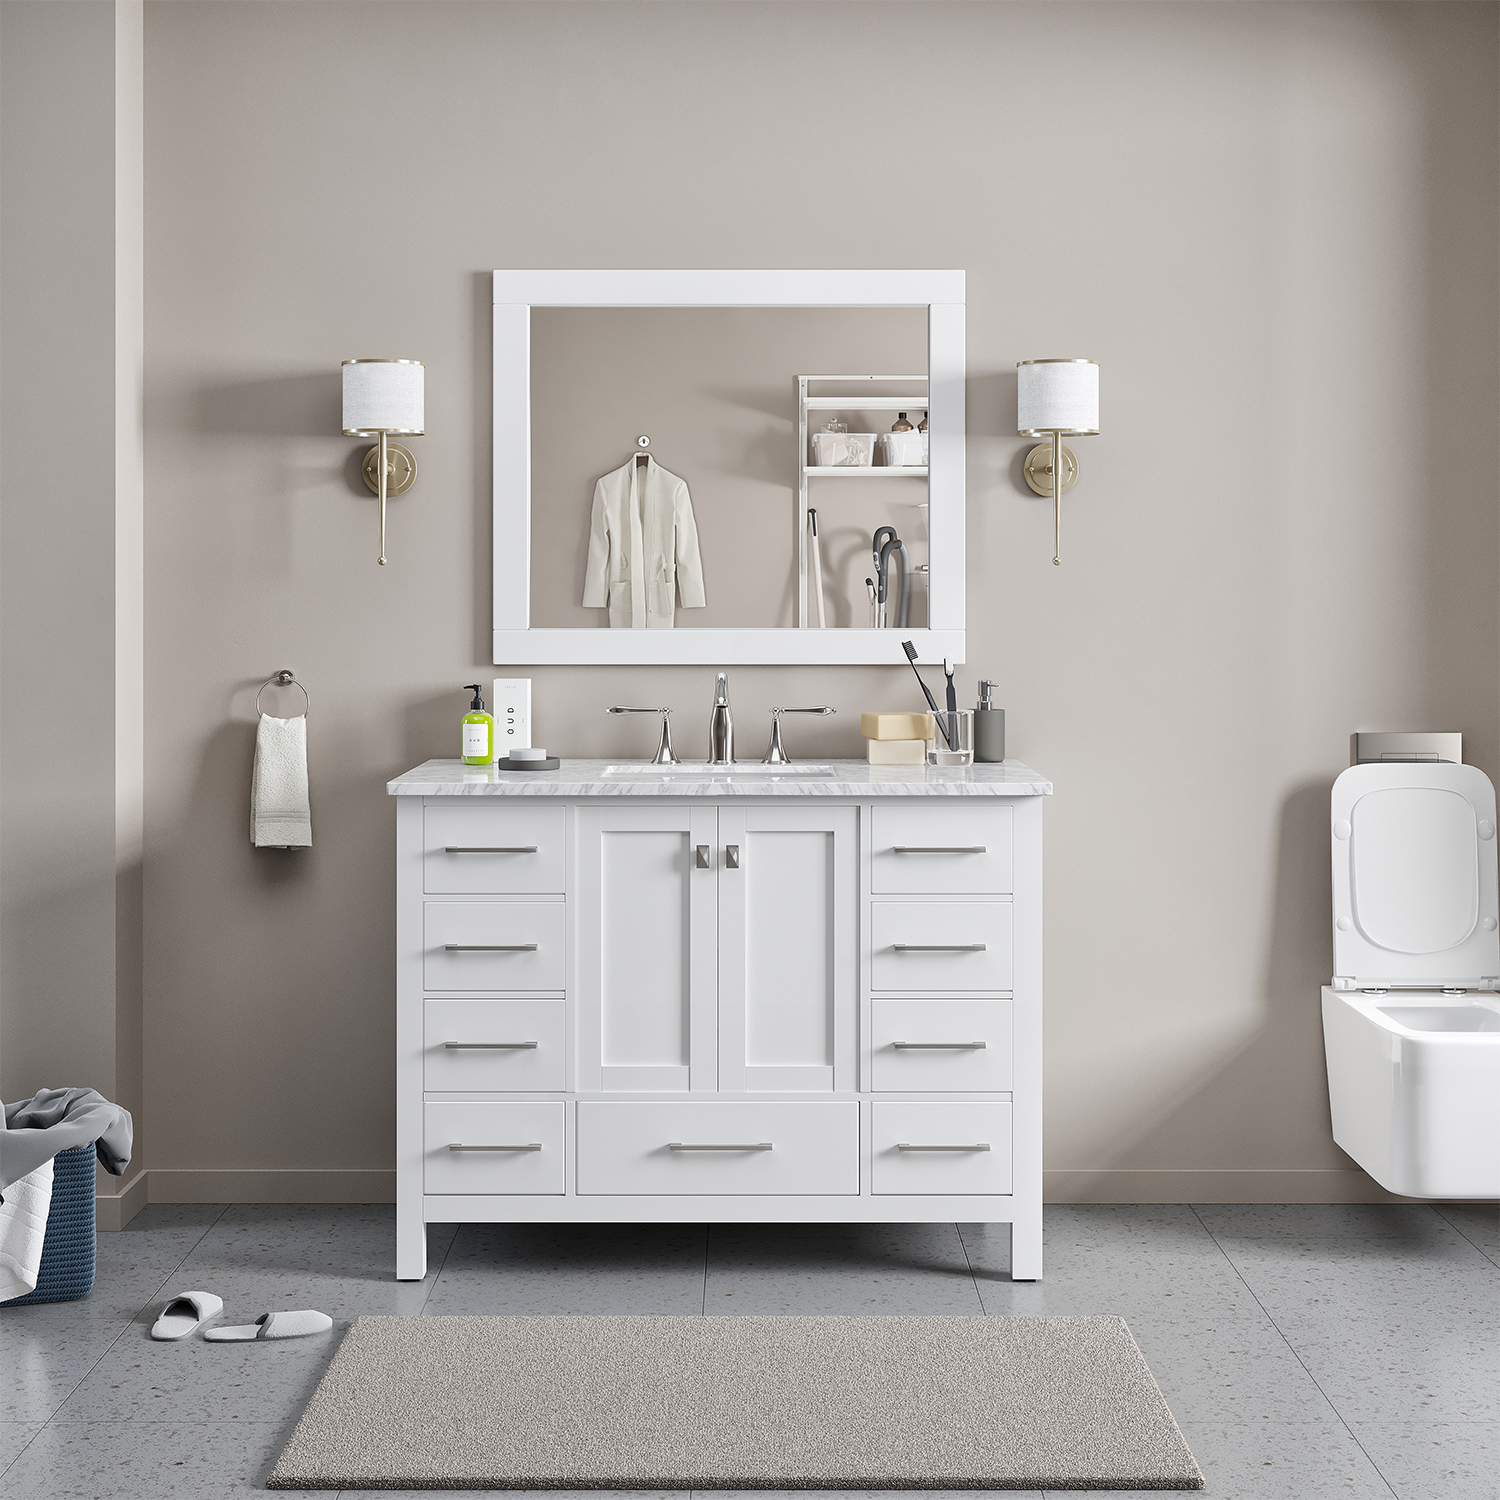 "EVVN412 42WH A Main - Eviva Aberdeen 42"" Transitional White Bathroom Vanity with White Carrera Countertop"